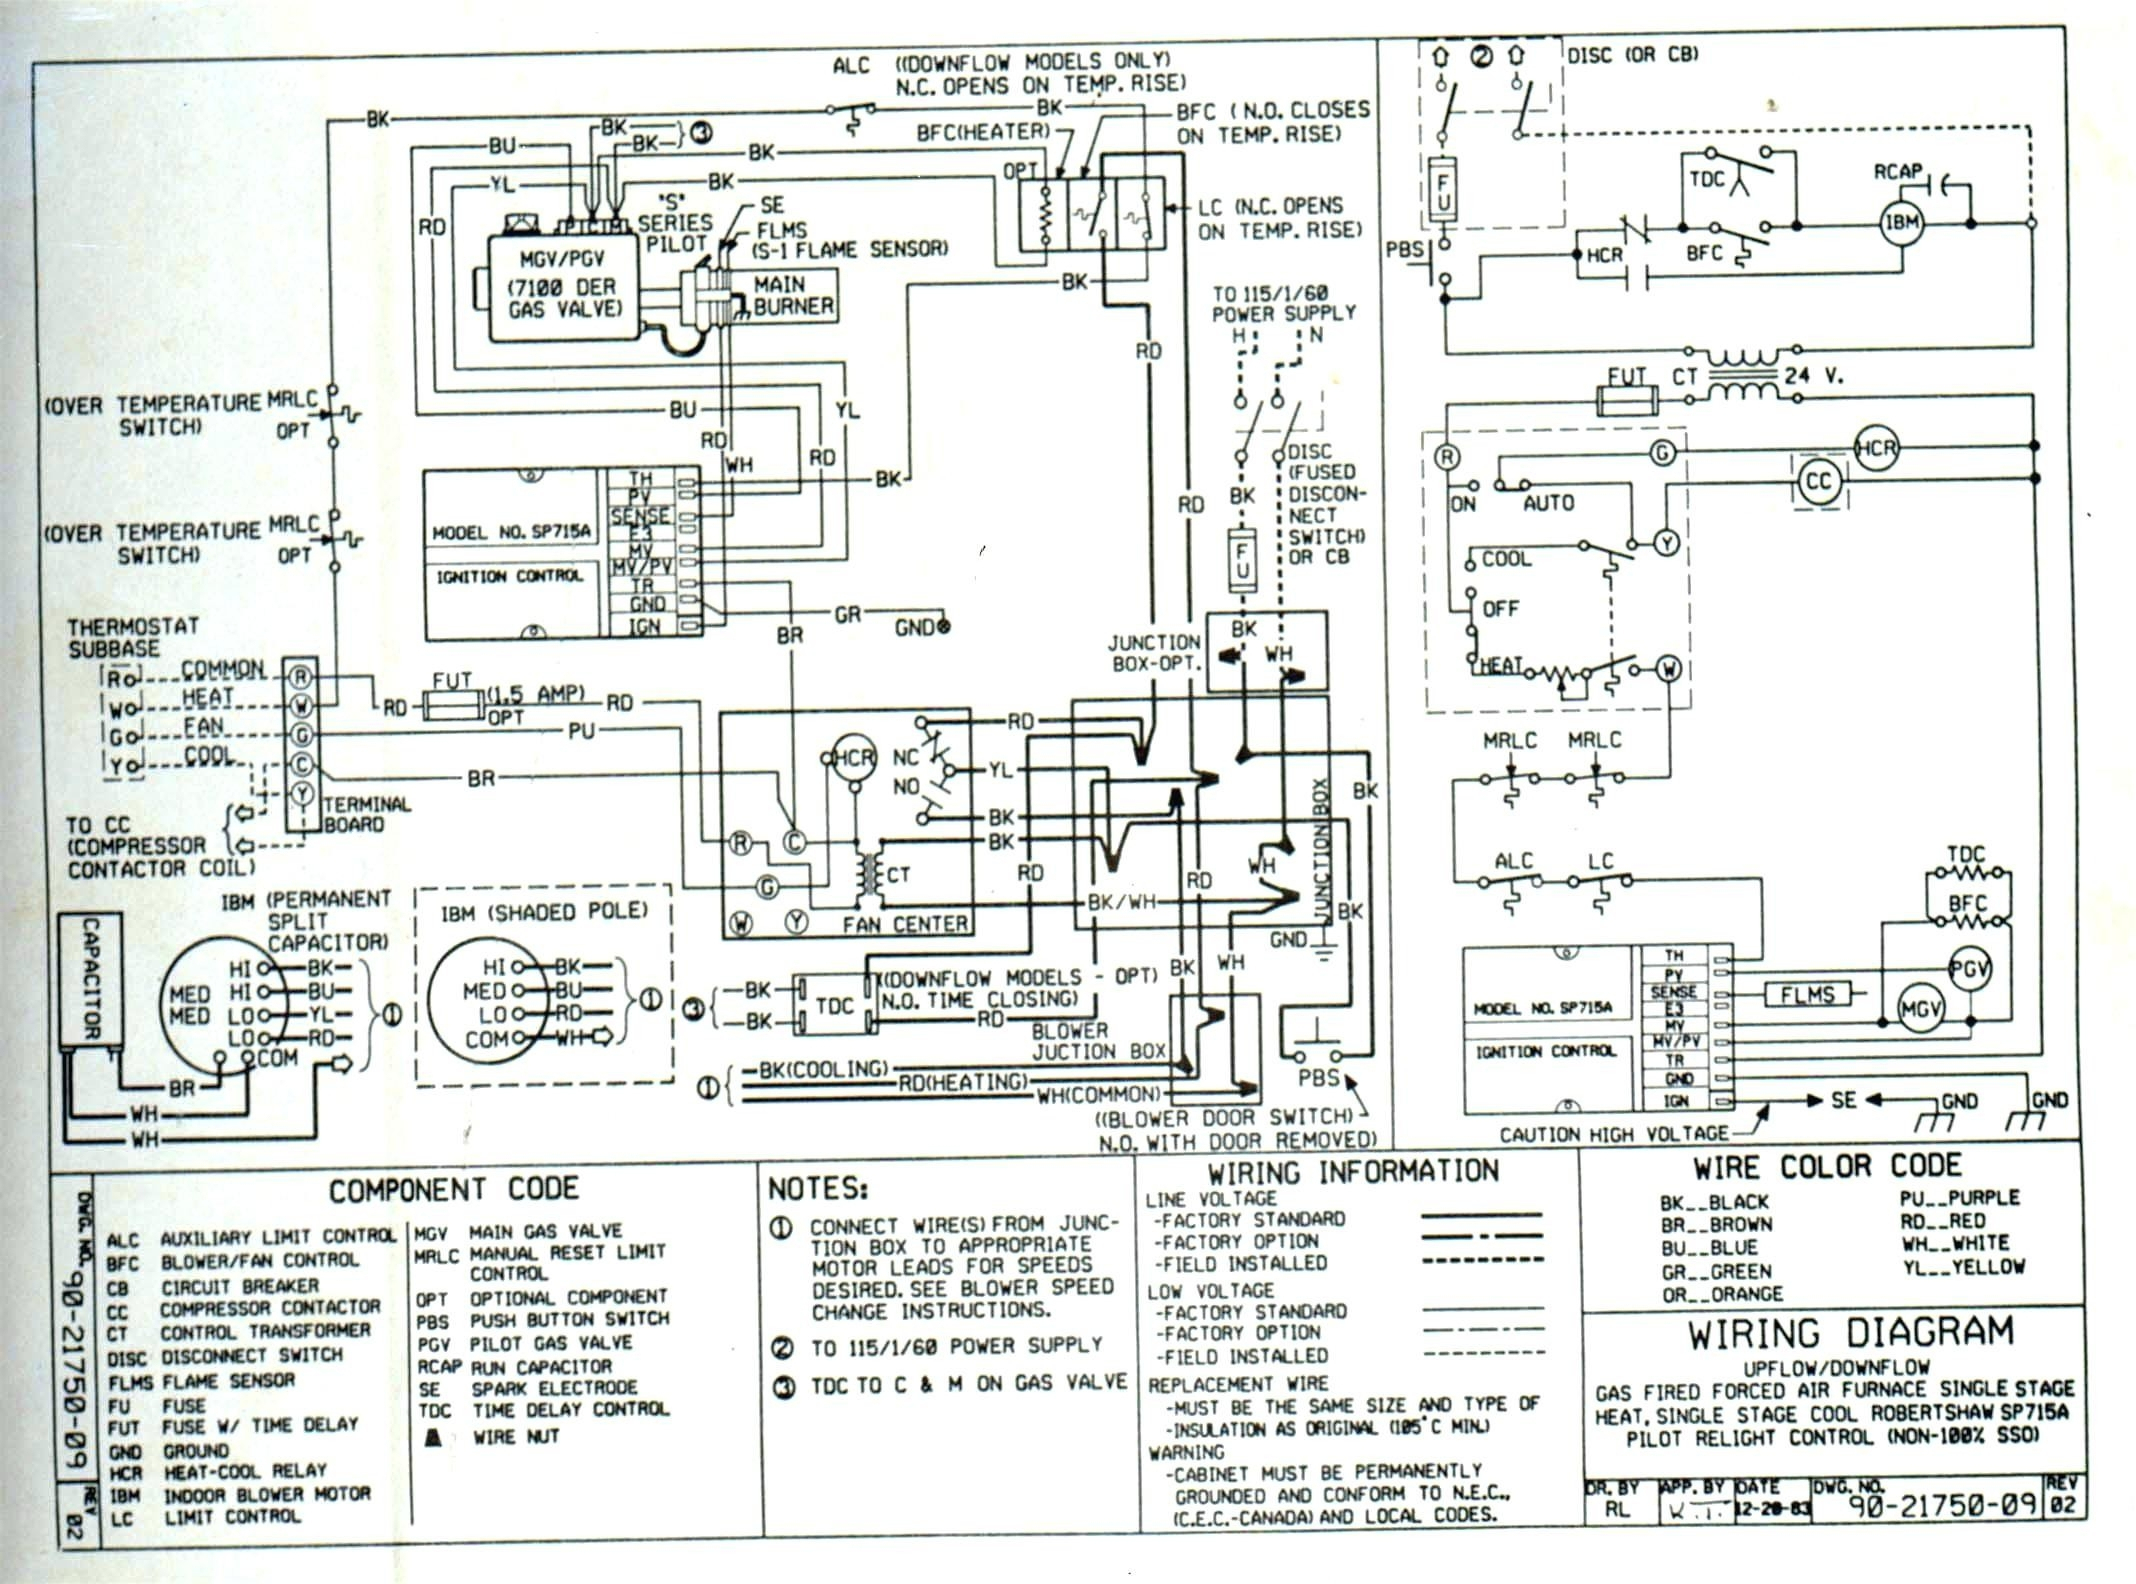 Trane Voyager Wiring Diagram | Best Wiring Library - Trane Thermostat Wiring Diagram